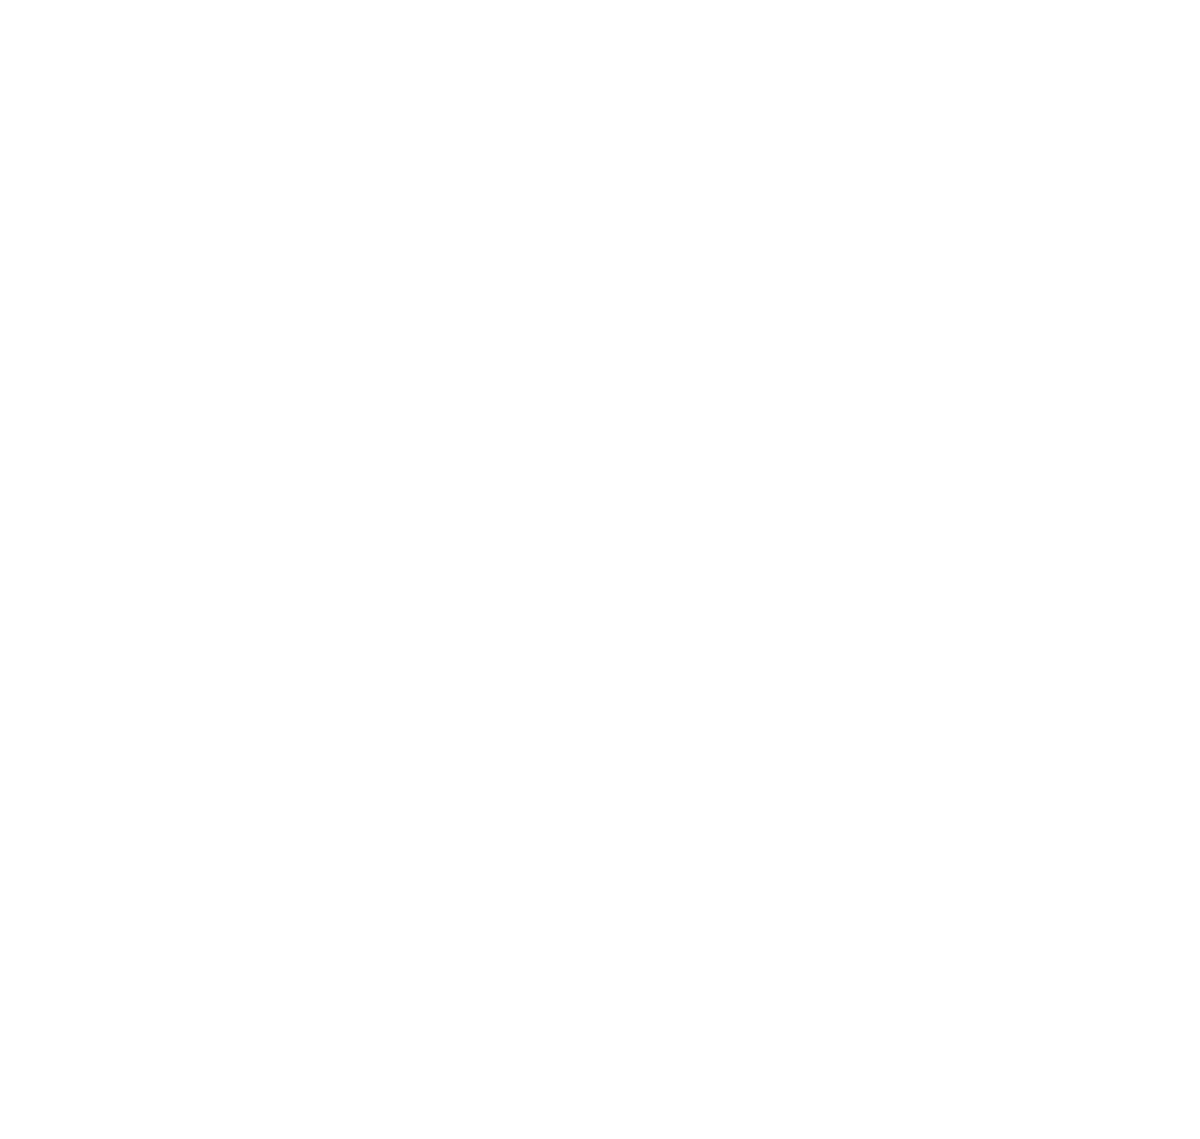 The Banditry Co.